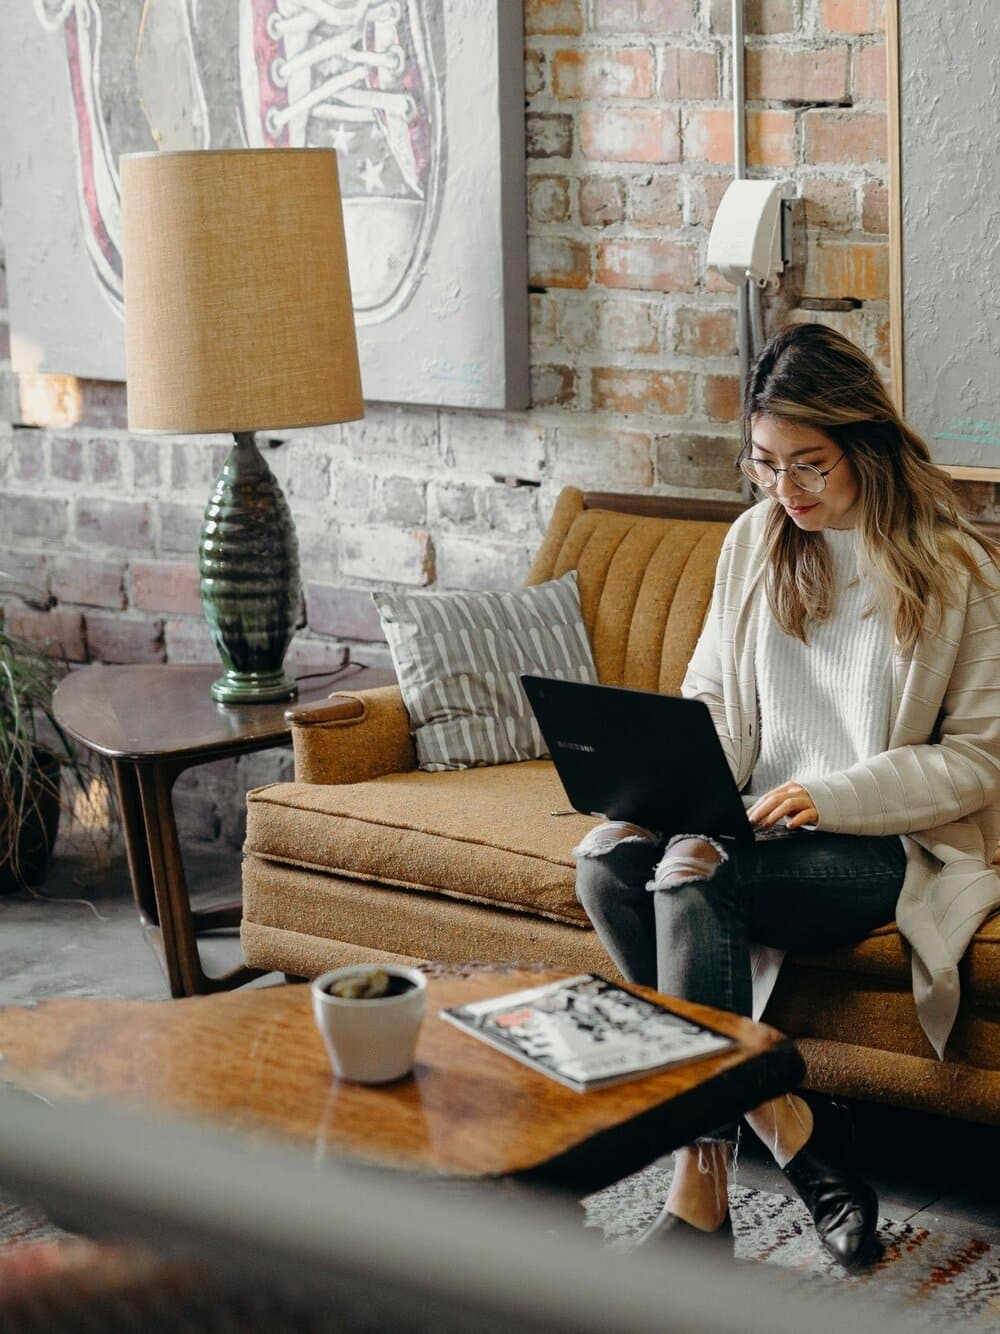 4 Tips to Find Balance Between Work and Home